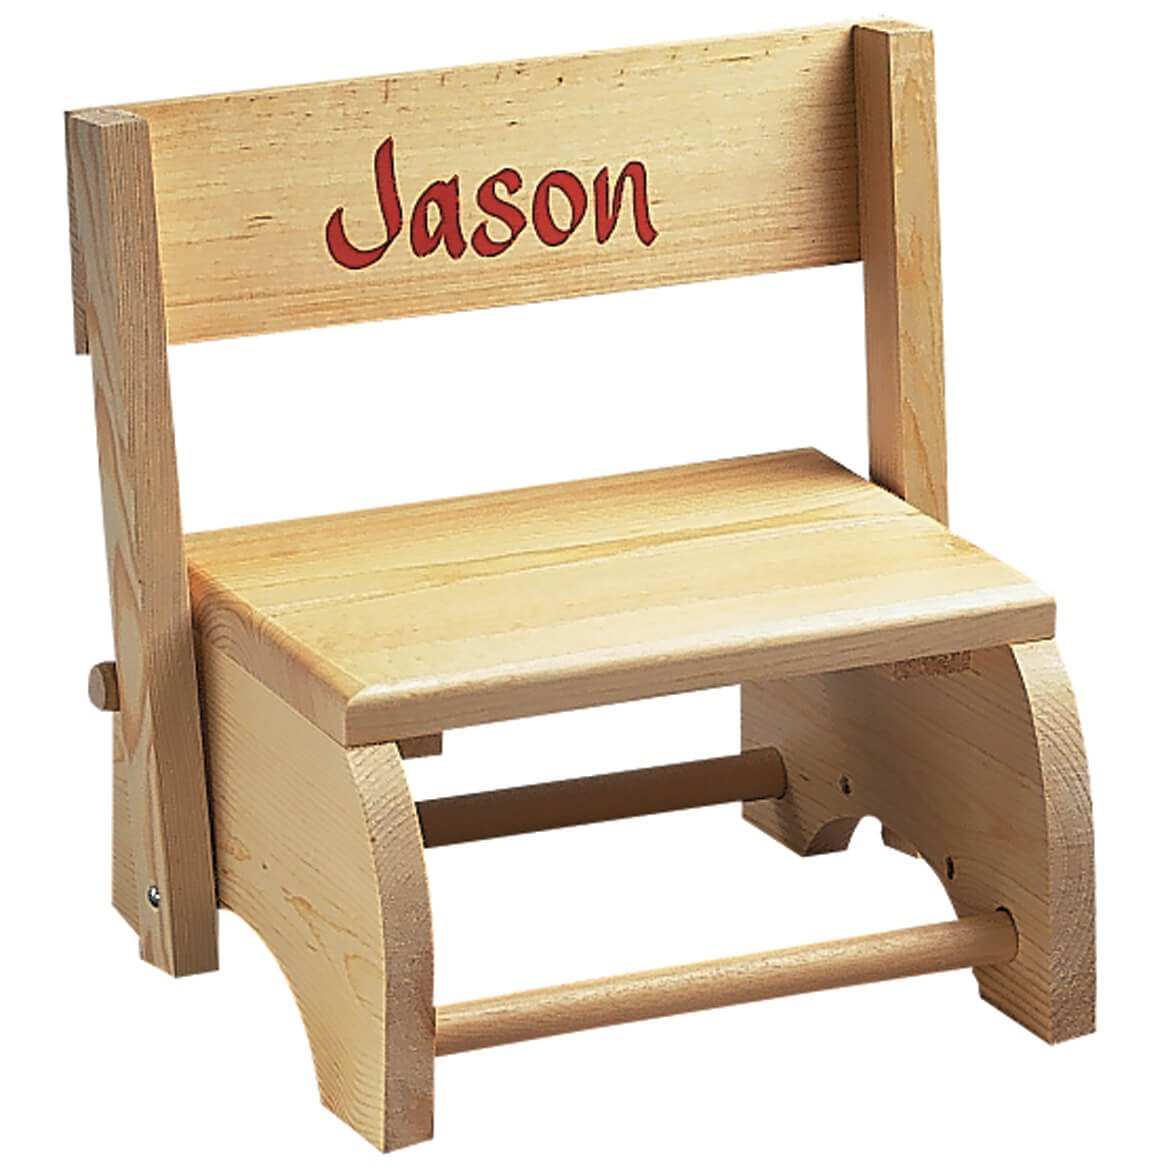 Magnificent Wooden Personalized Childrens Chair Step Stool Combo Childrens Furniture Ideal For Toy Room Bedroom Or Bathroom Knotty Pine Wood Pdpeps Interior Chair Design Pdpepsorg